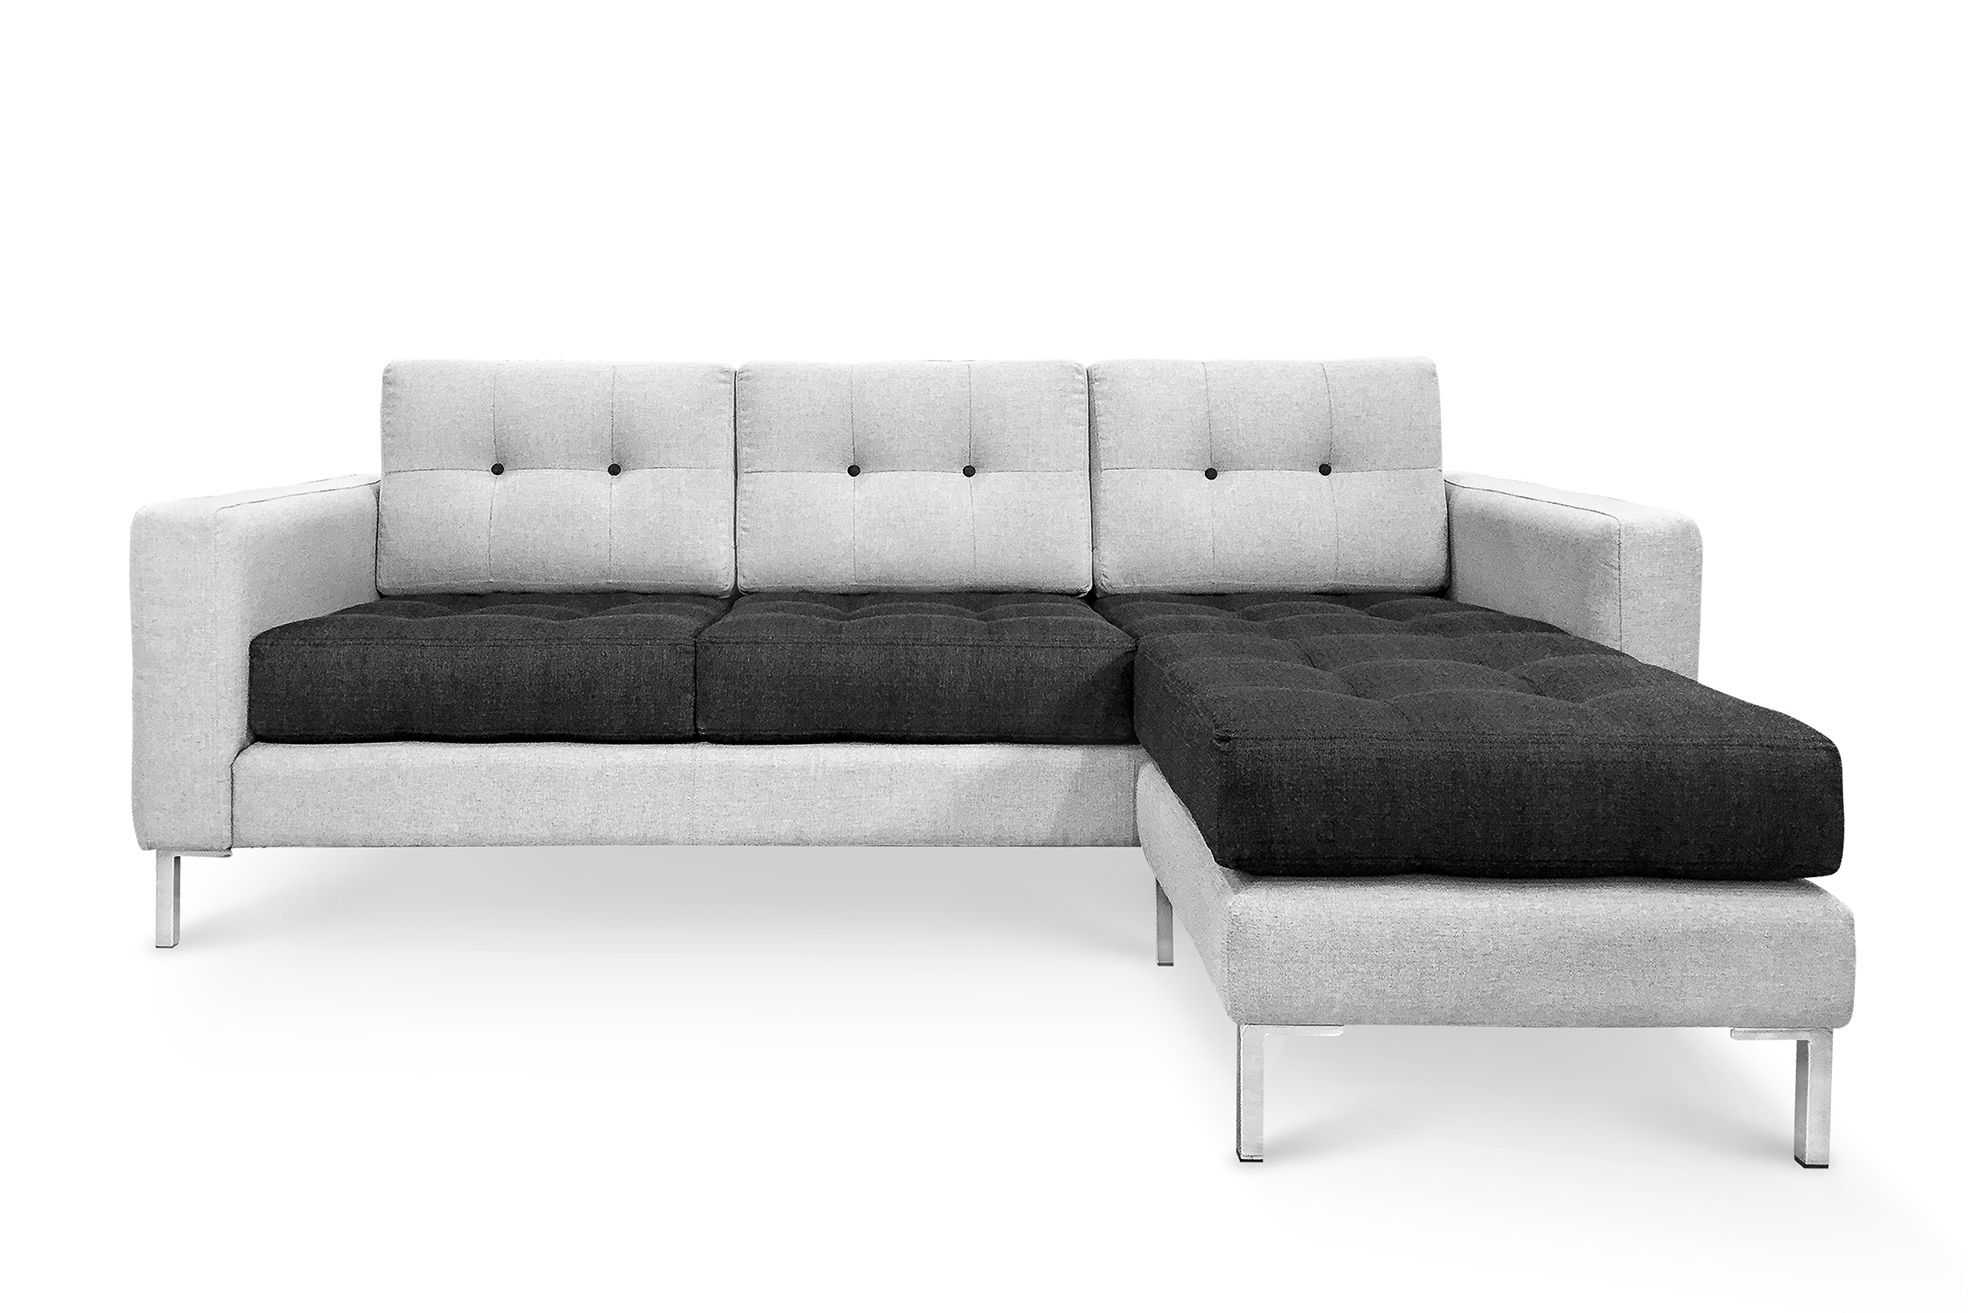 Nirvana Home Collection   Modern Furniture, Canadian Made Home Furnishings